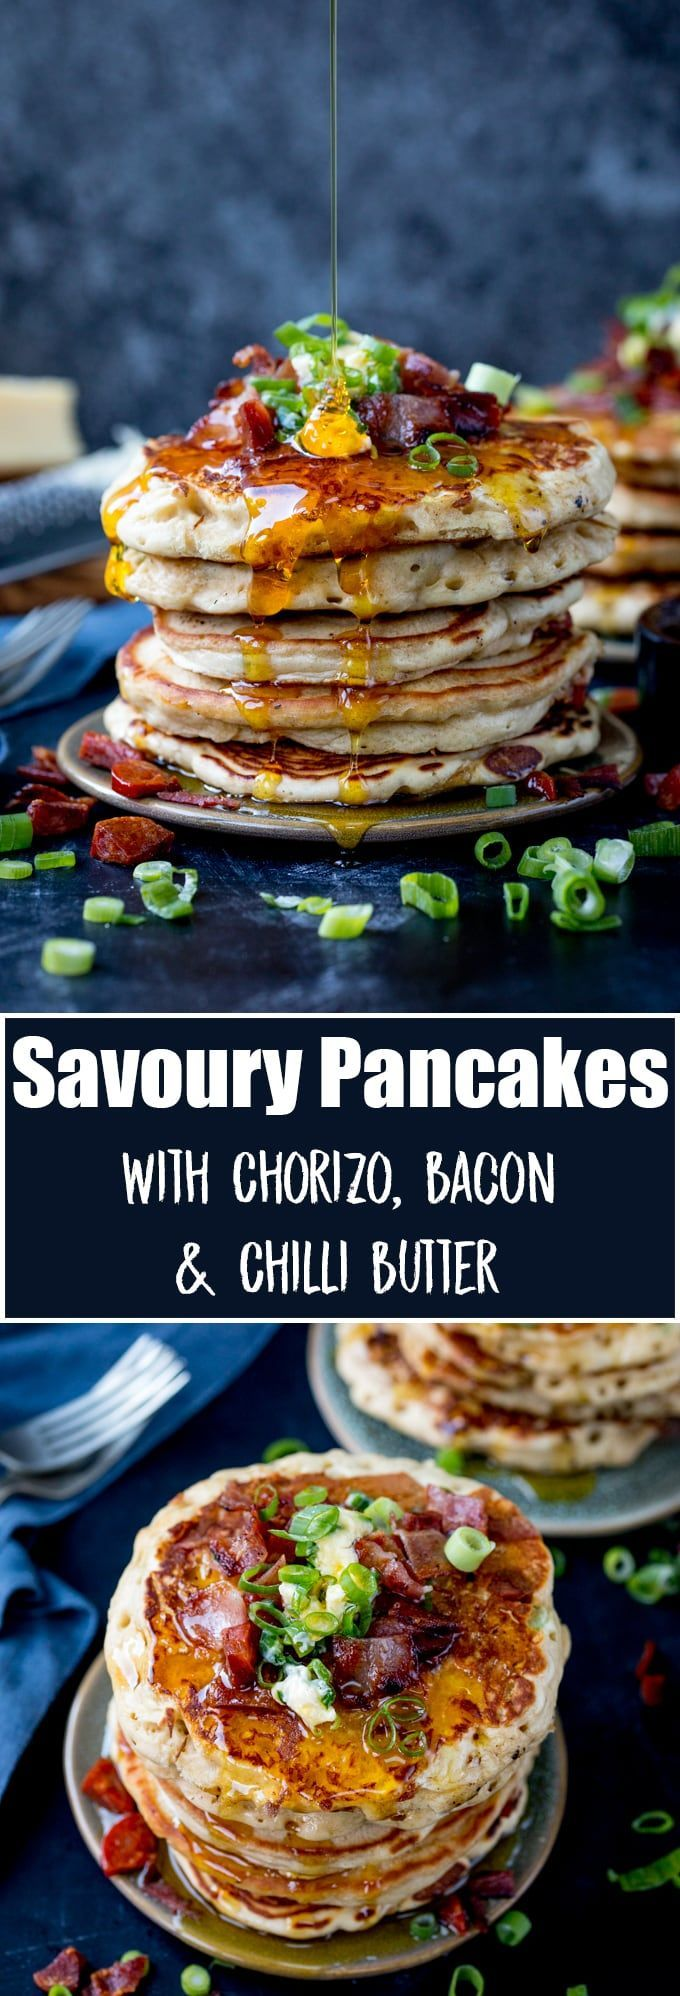 Savoury Dinner Pancakes with Chilli Butter. These Savoury Pancakes would make great street food!  Simple and quick to make - great for a speedy dinner! #savorypancakes #chilibutter #pancakeday #pancakerecipe #dinnerpancake #shrovetuesday